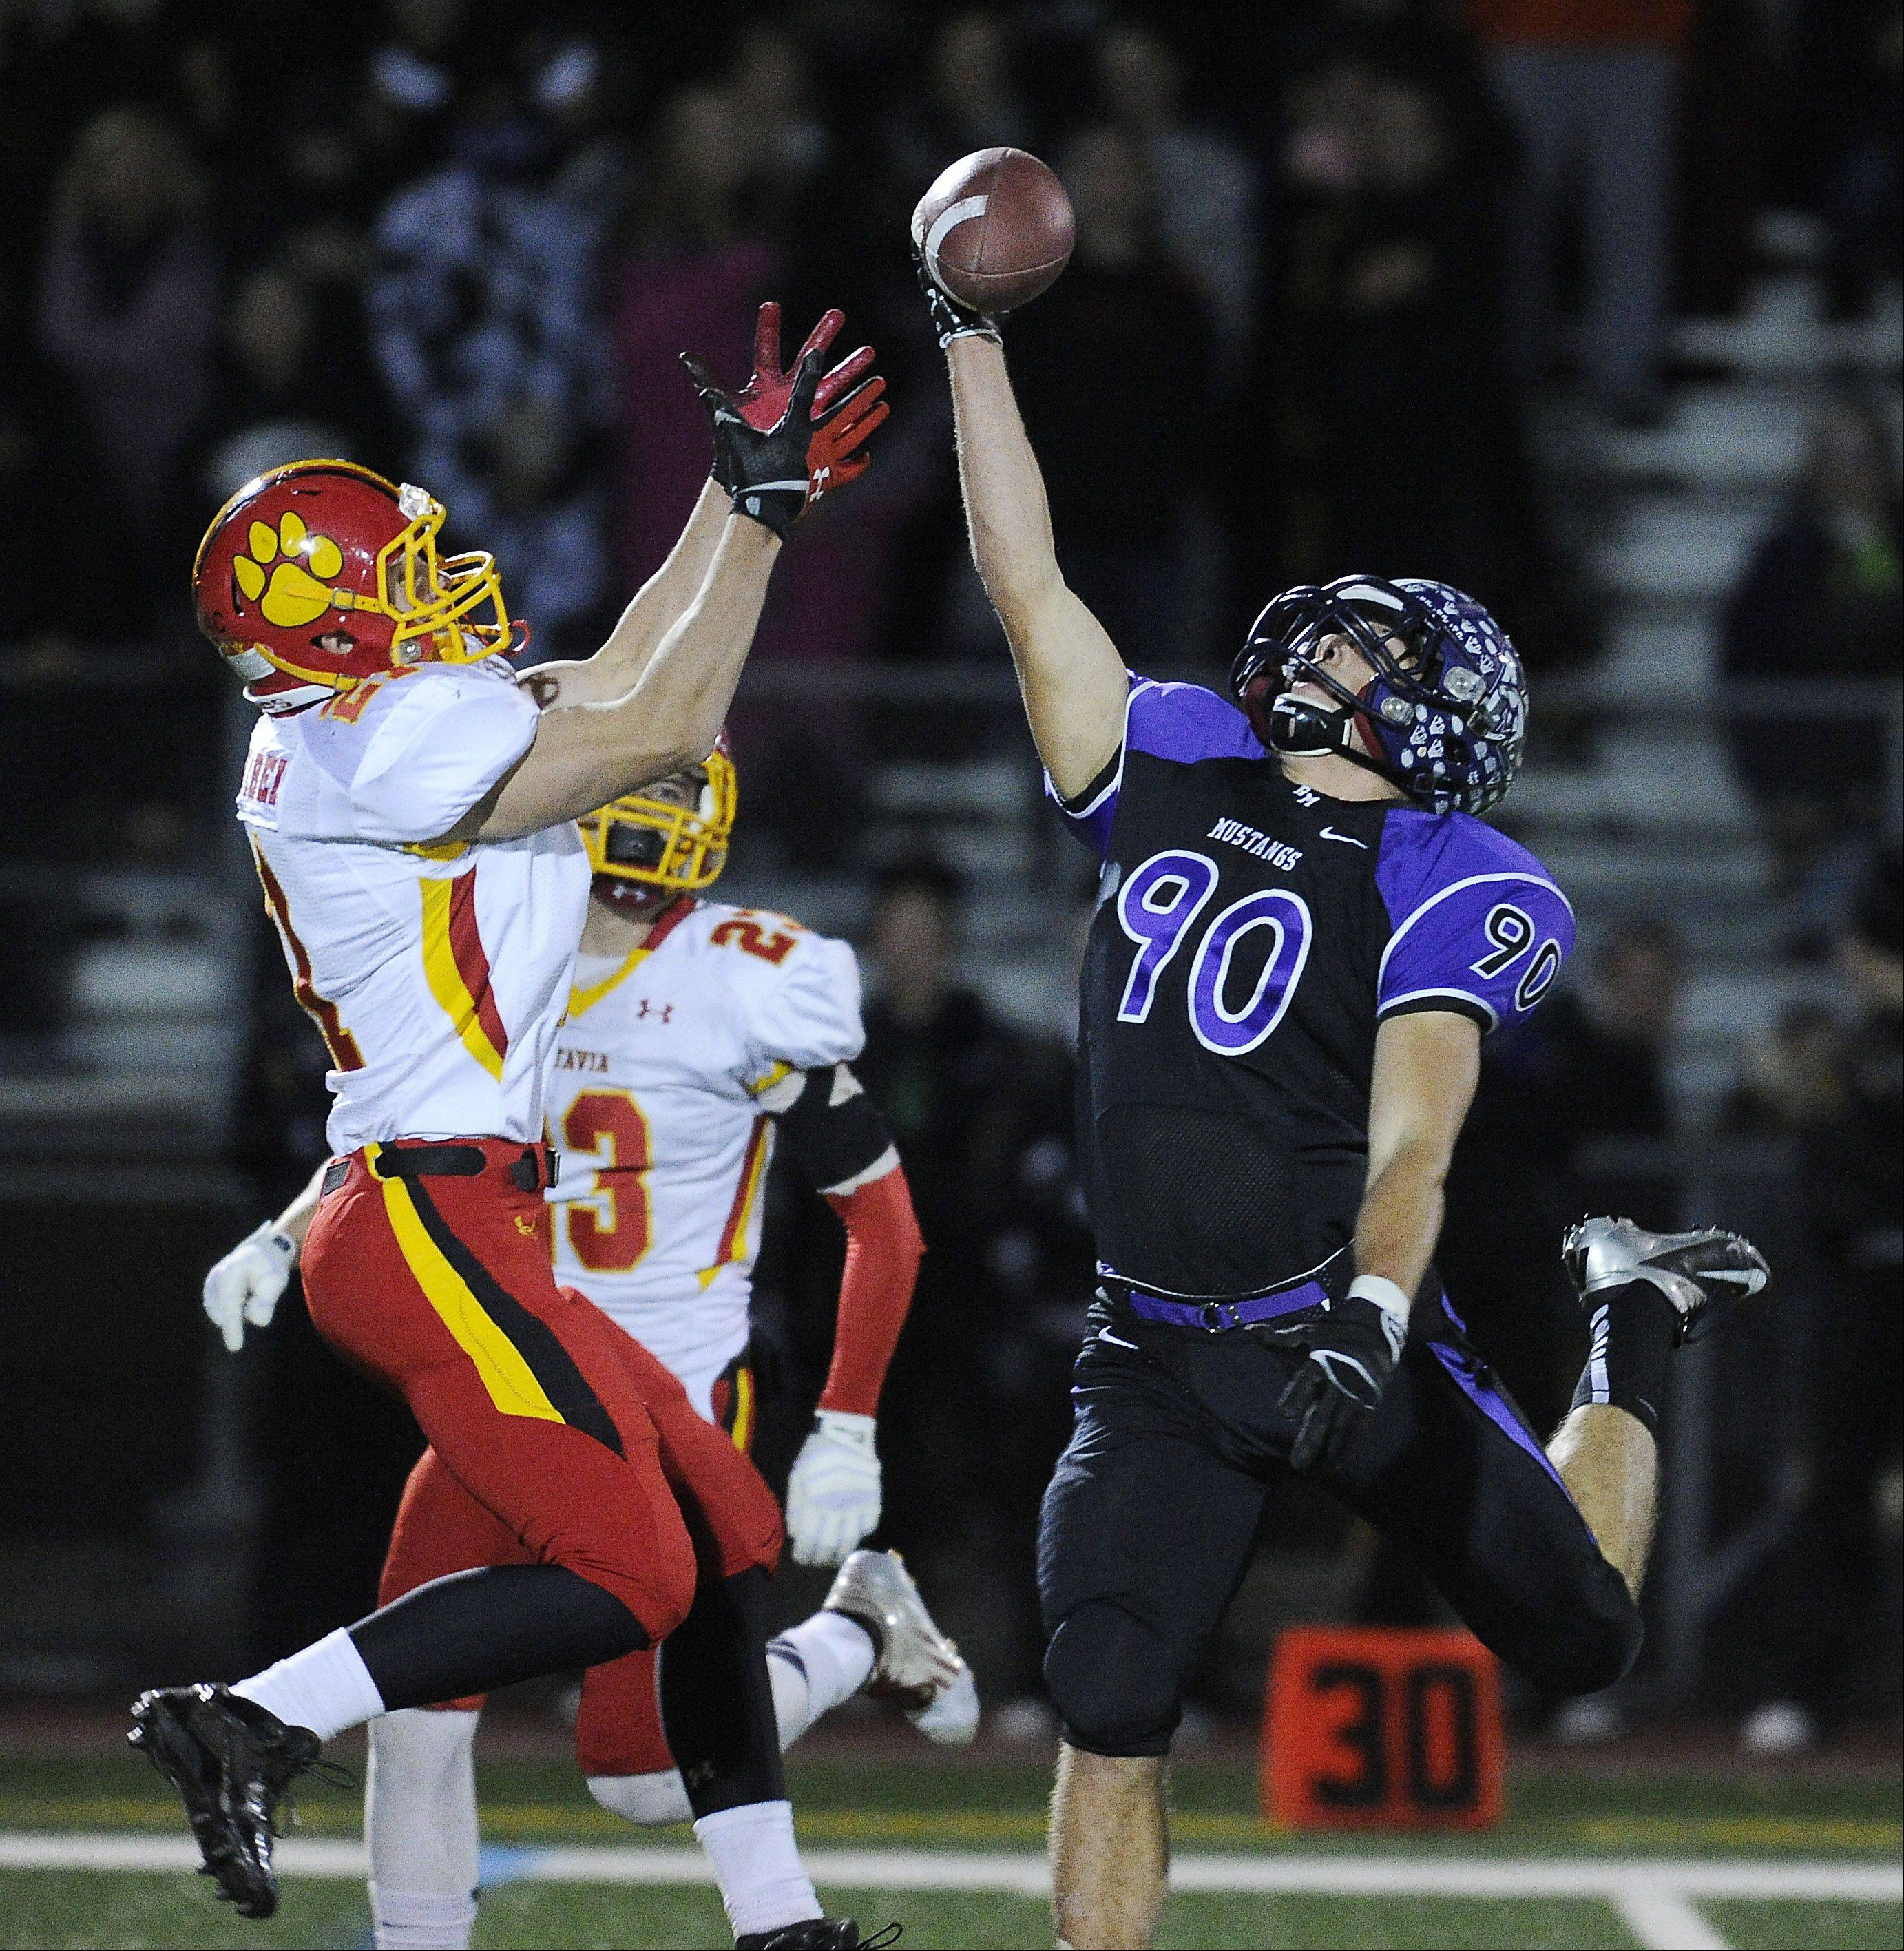 Batavia's Nick Bernabei is unable to stop this one-handed pass play that Rolling Meadows' Matt Campbell grabbed and ran in for a touchdown in the second quarter.